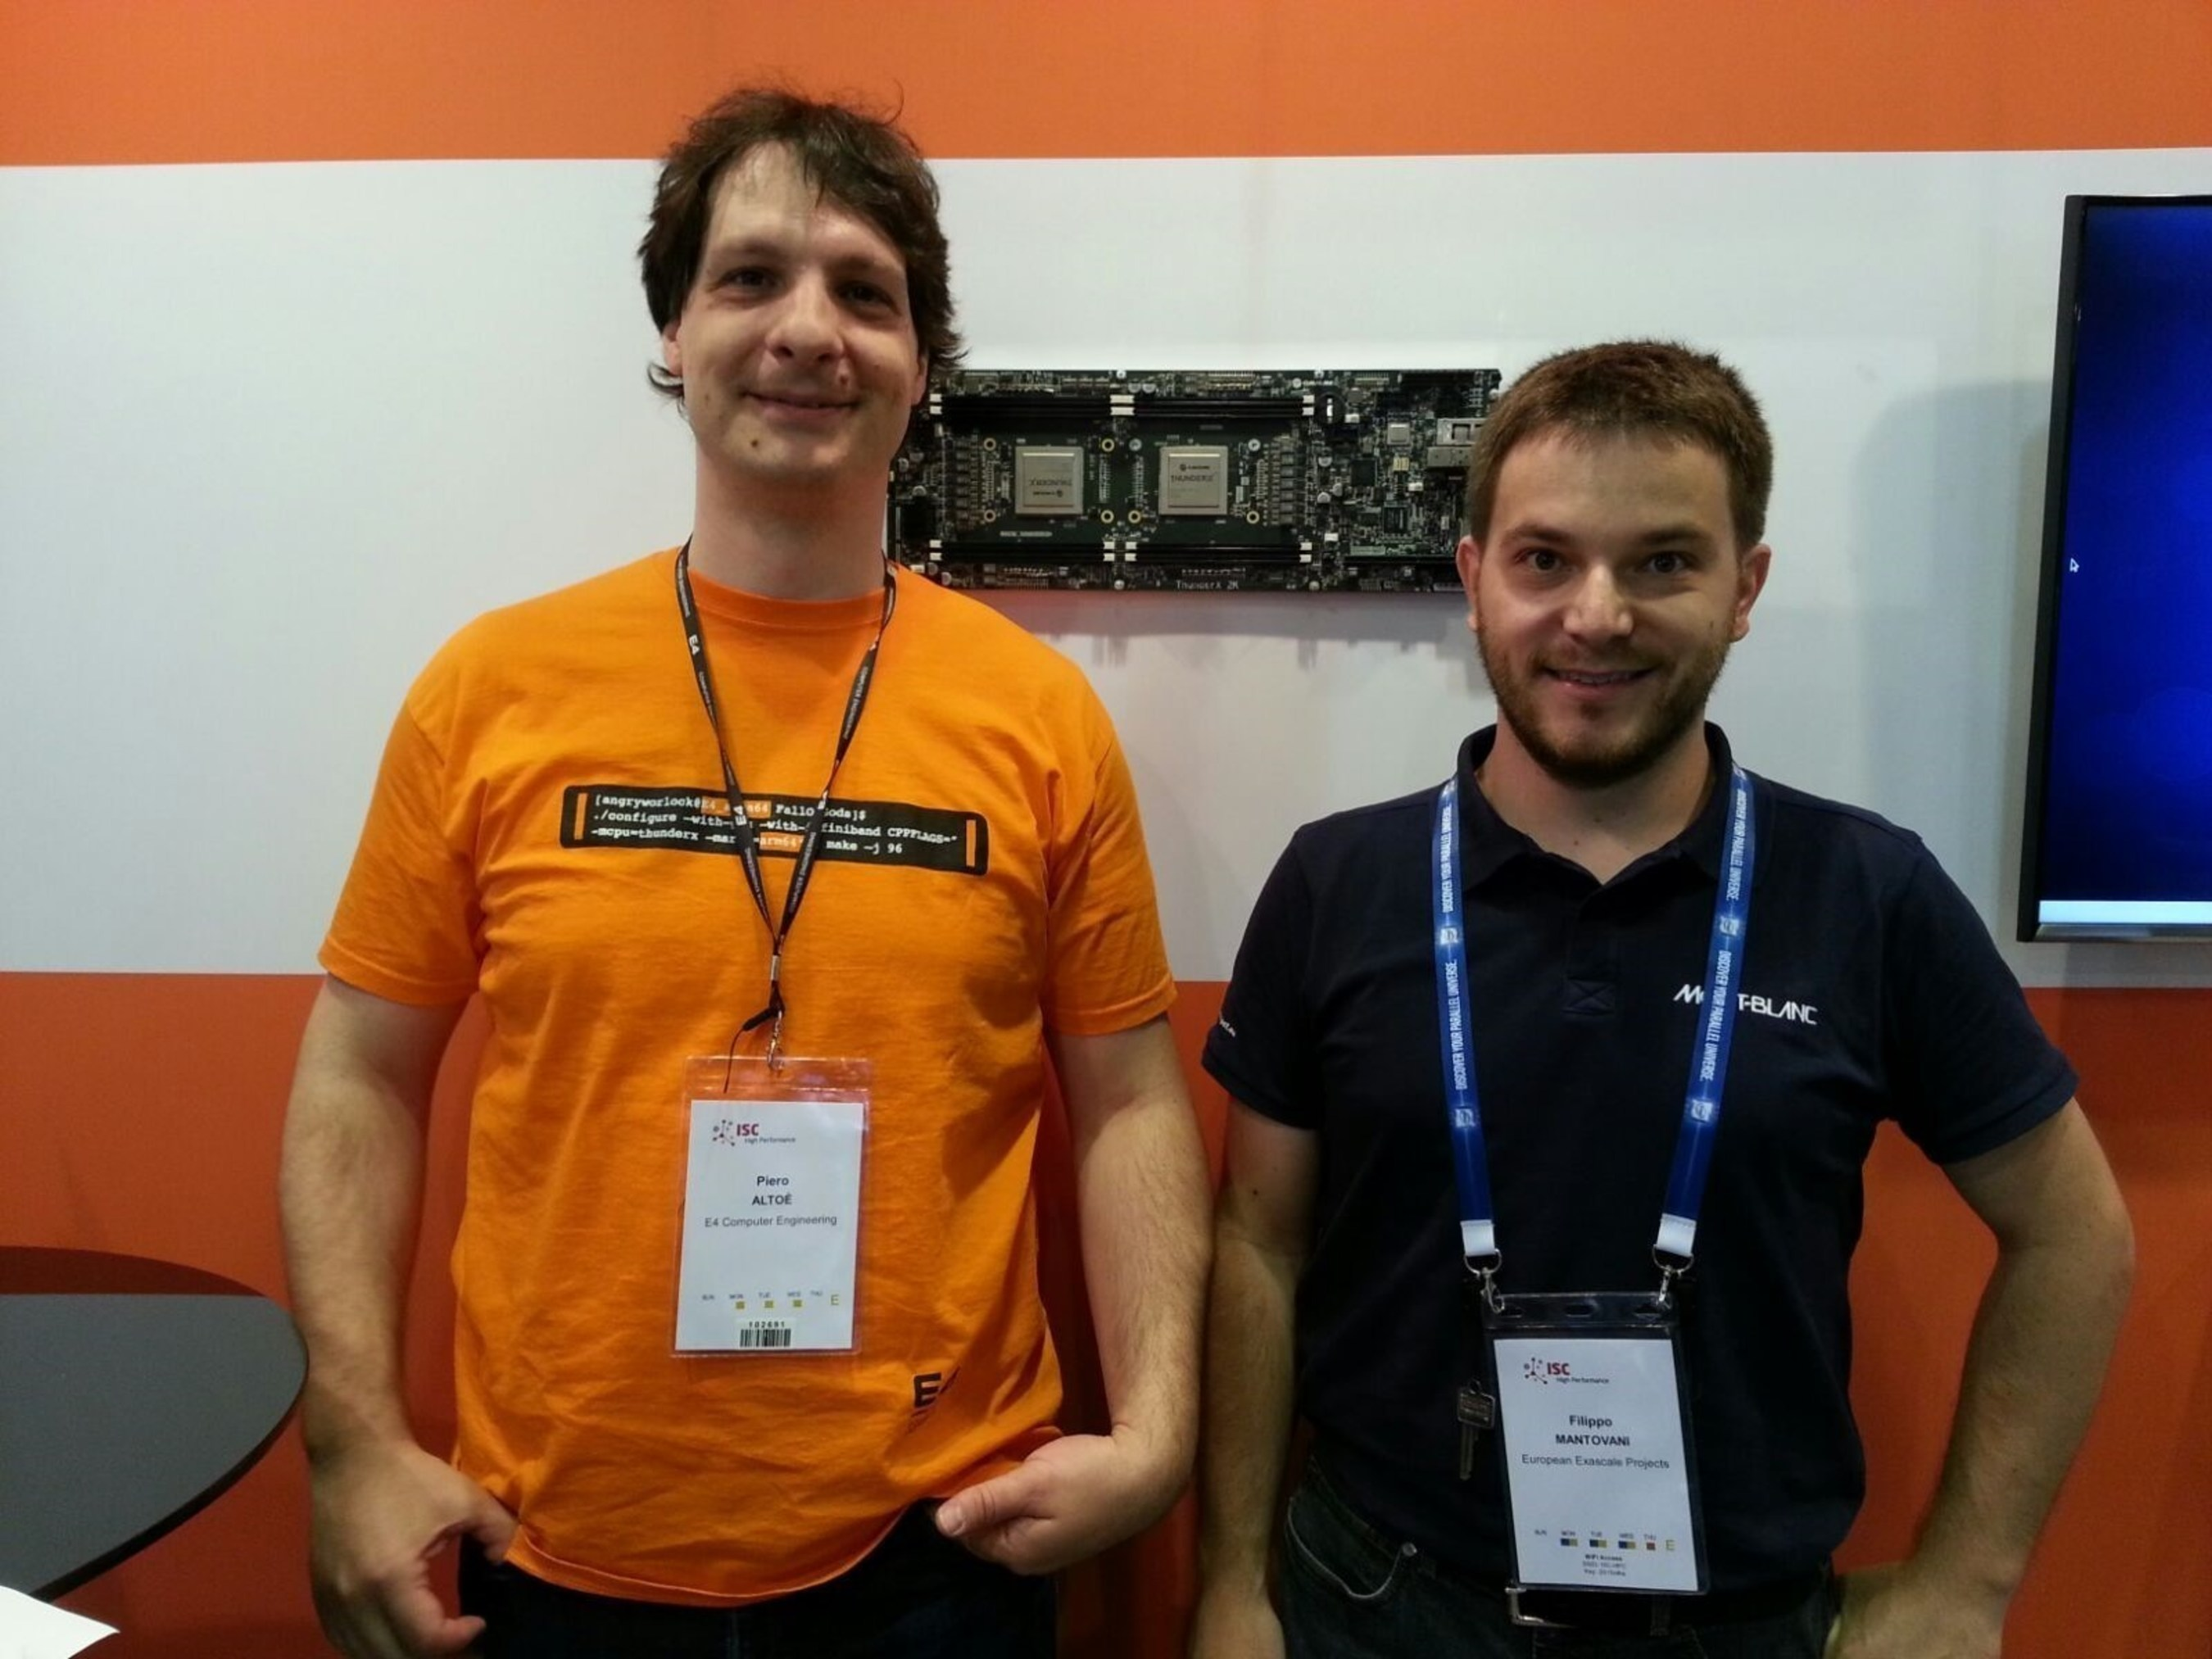 Piero Altoe and Filippo Mantovani at ISC 2015